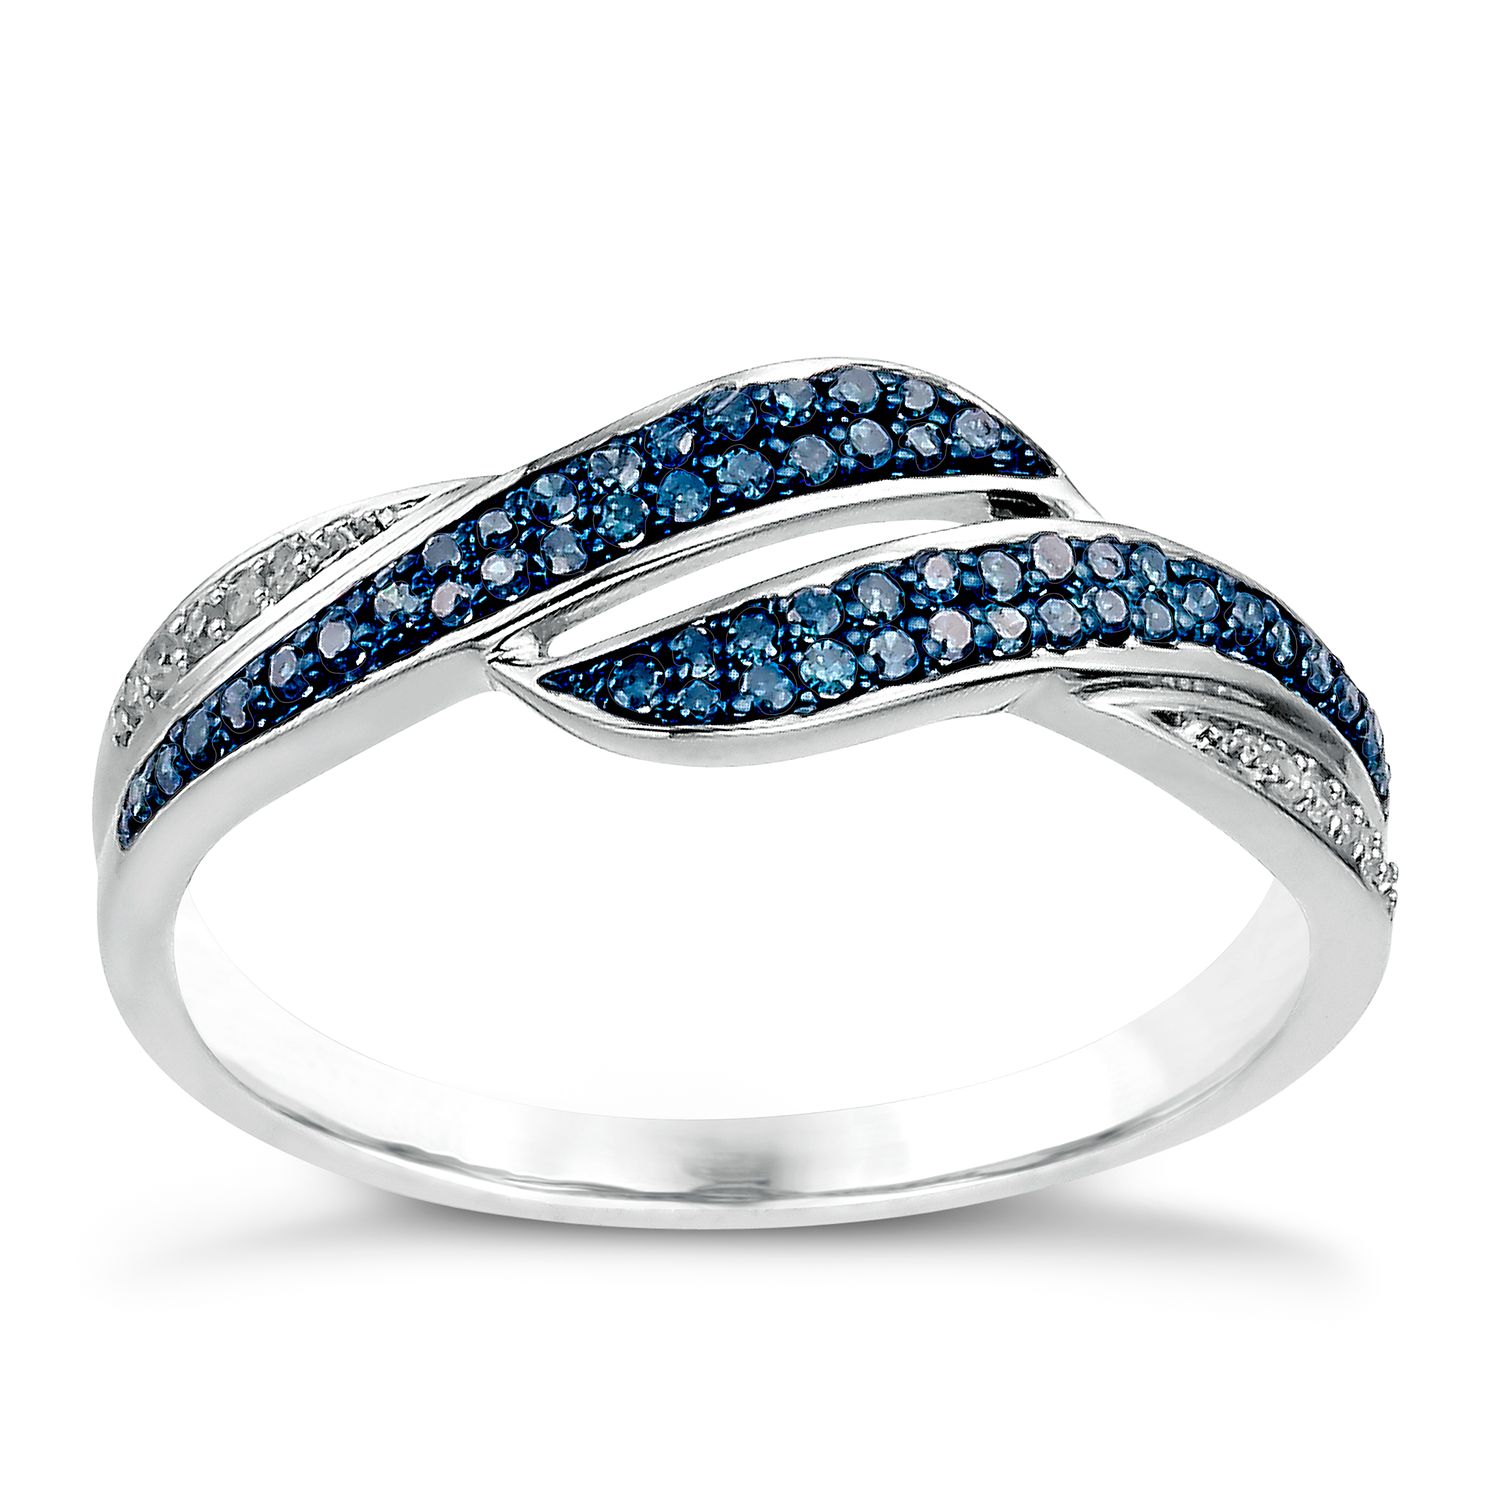 Sterling silver 19 point white & treated blue diamond ring